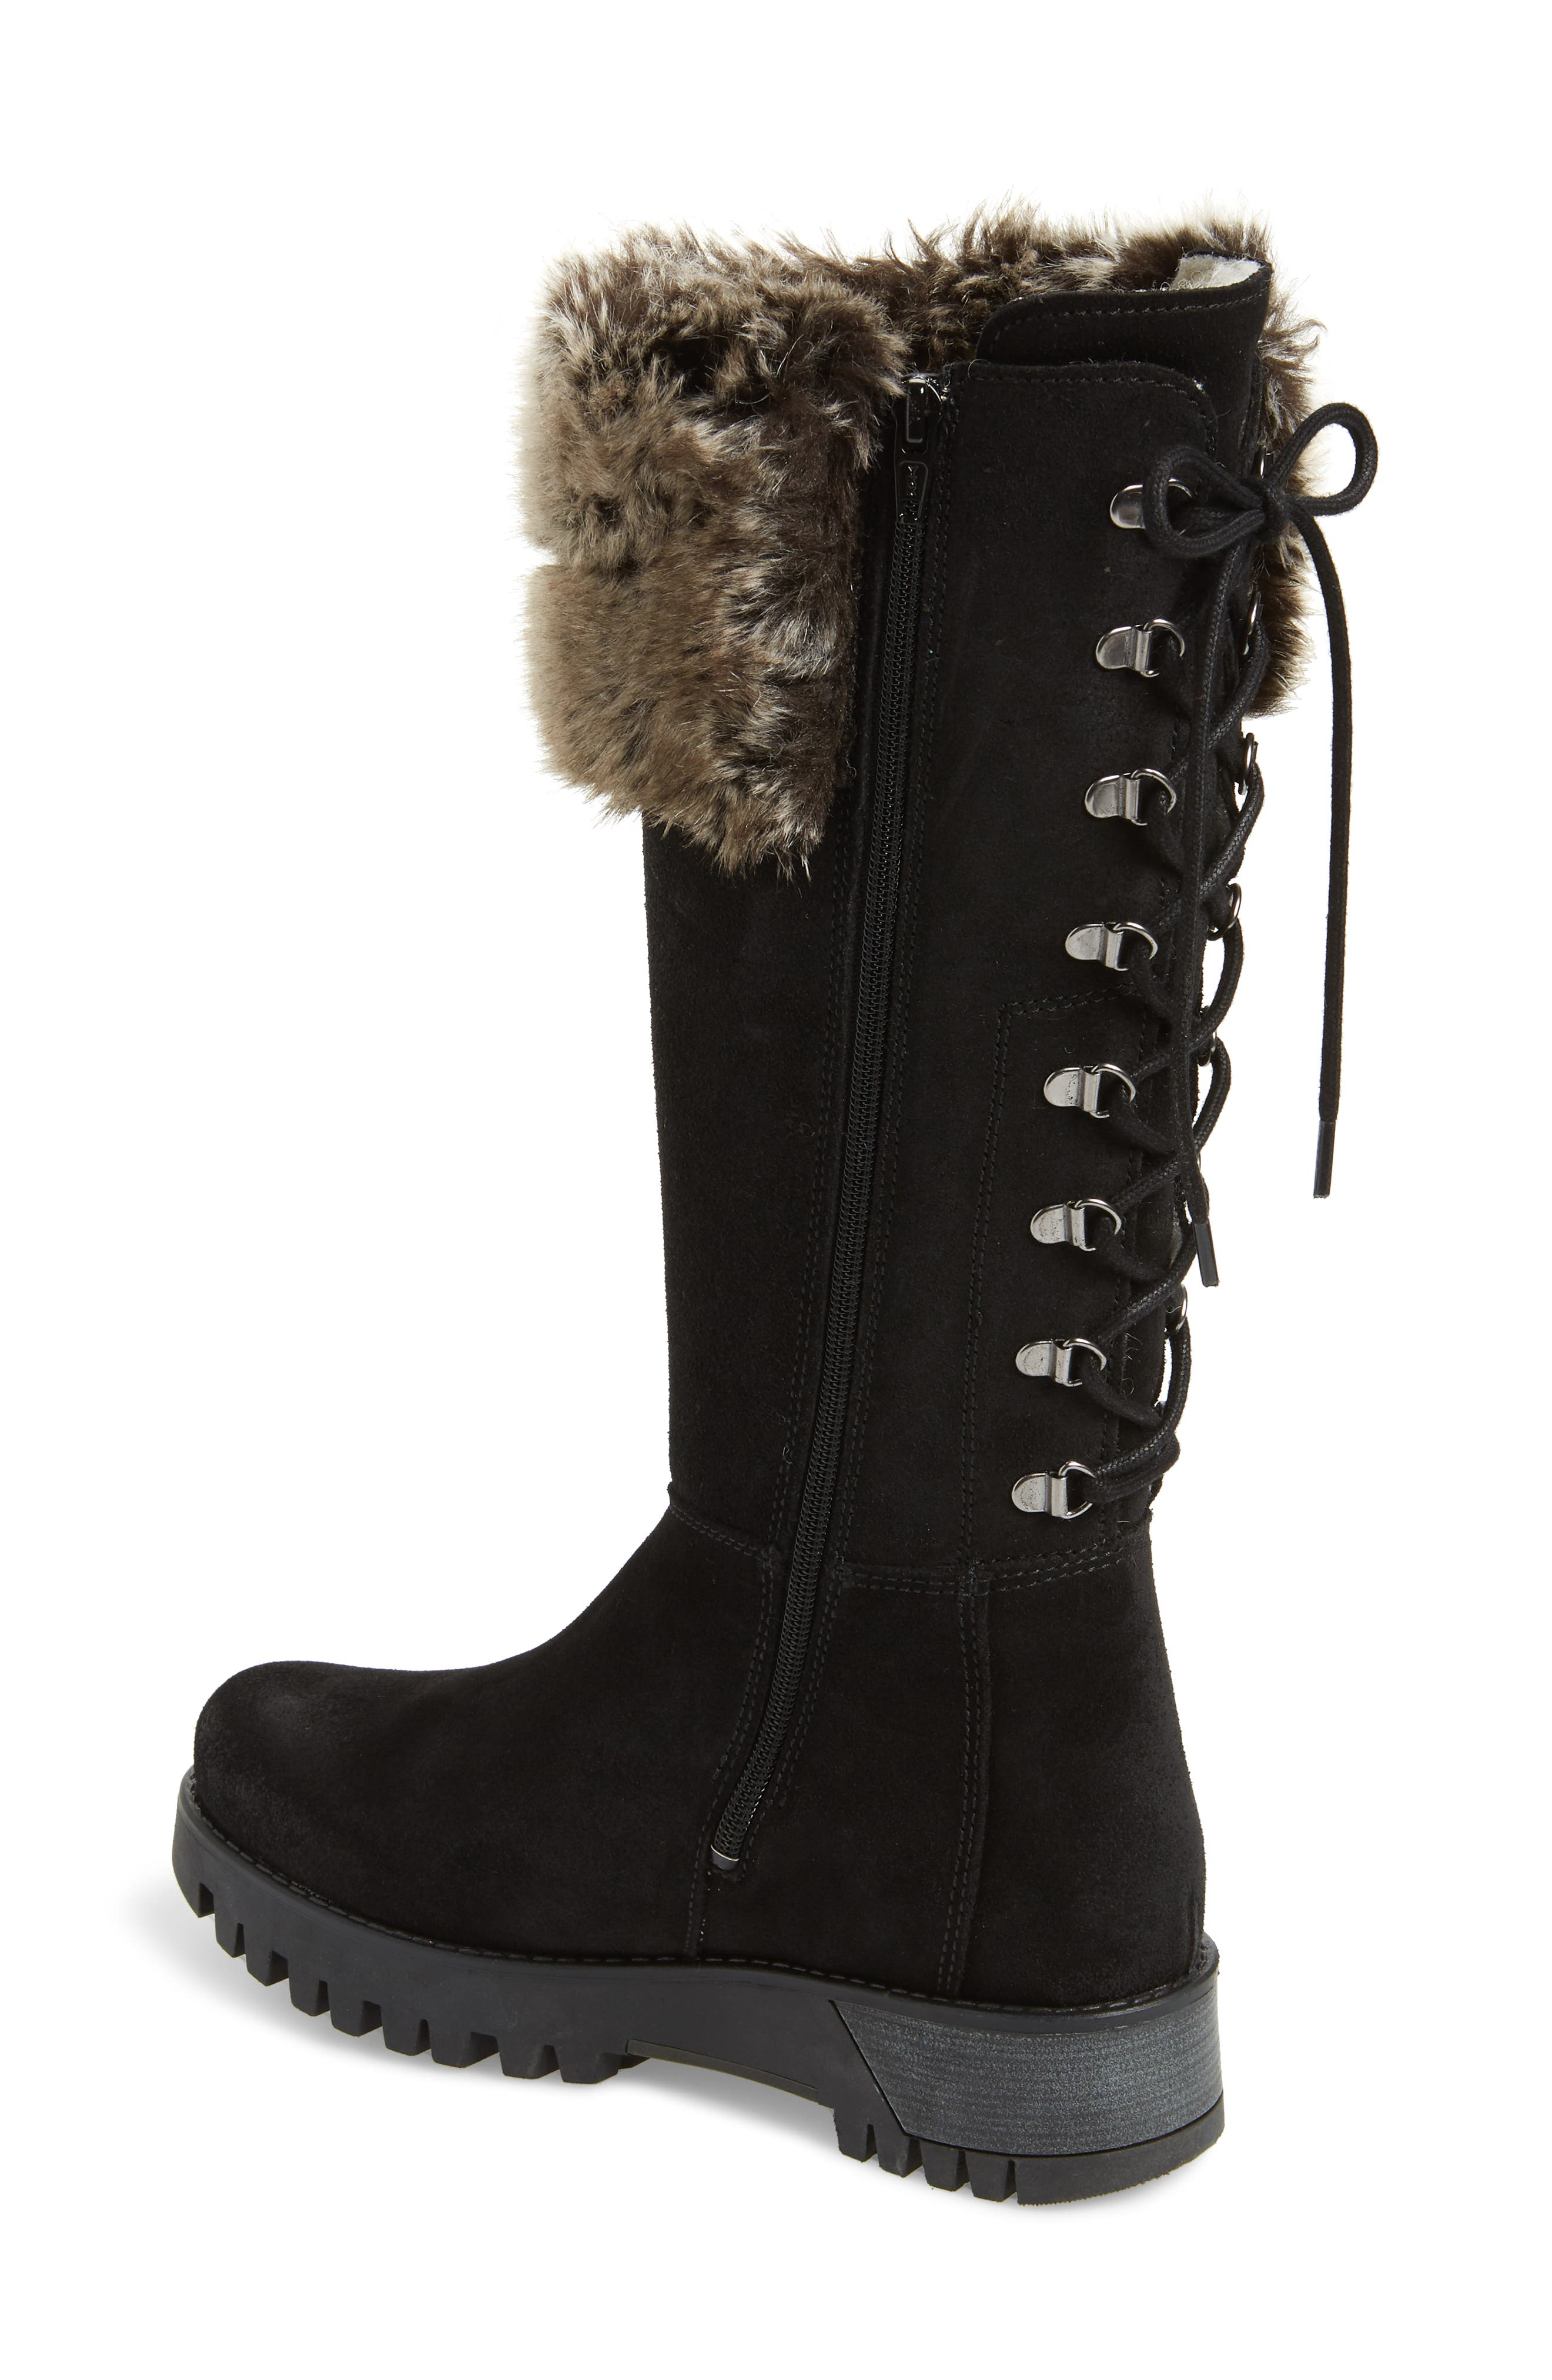 Graham Waterproof Winter Boot with Faux Fur Cuff,                             Alternate thumbnail 2, color,                             BLACK SUEDE